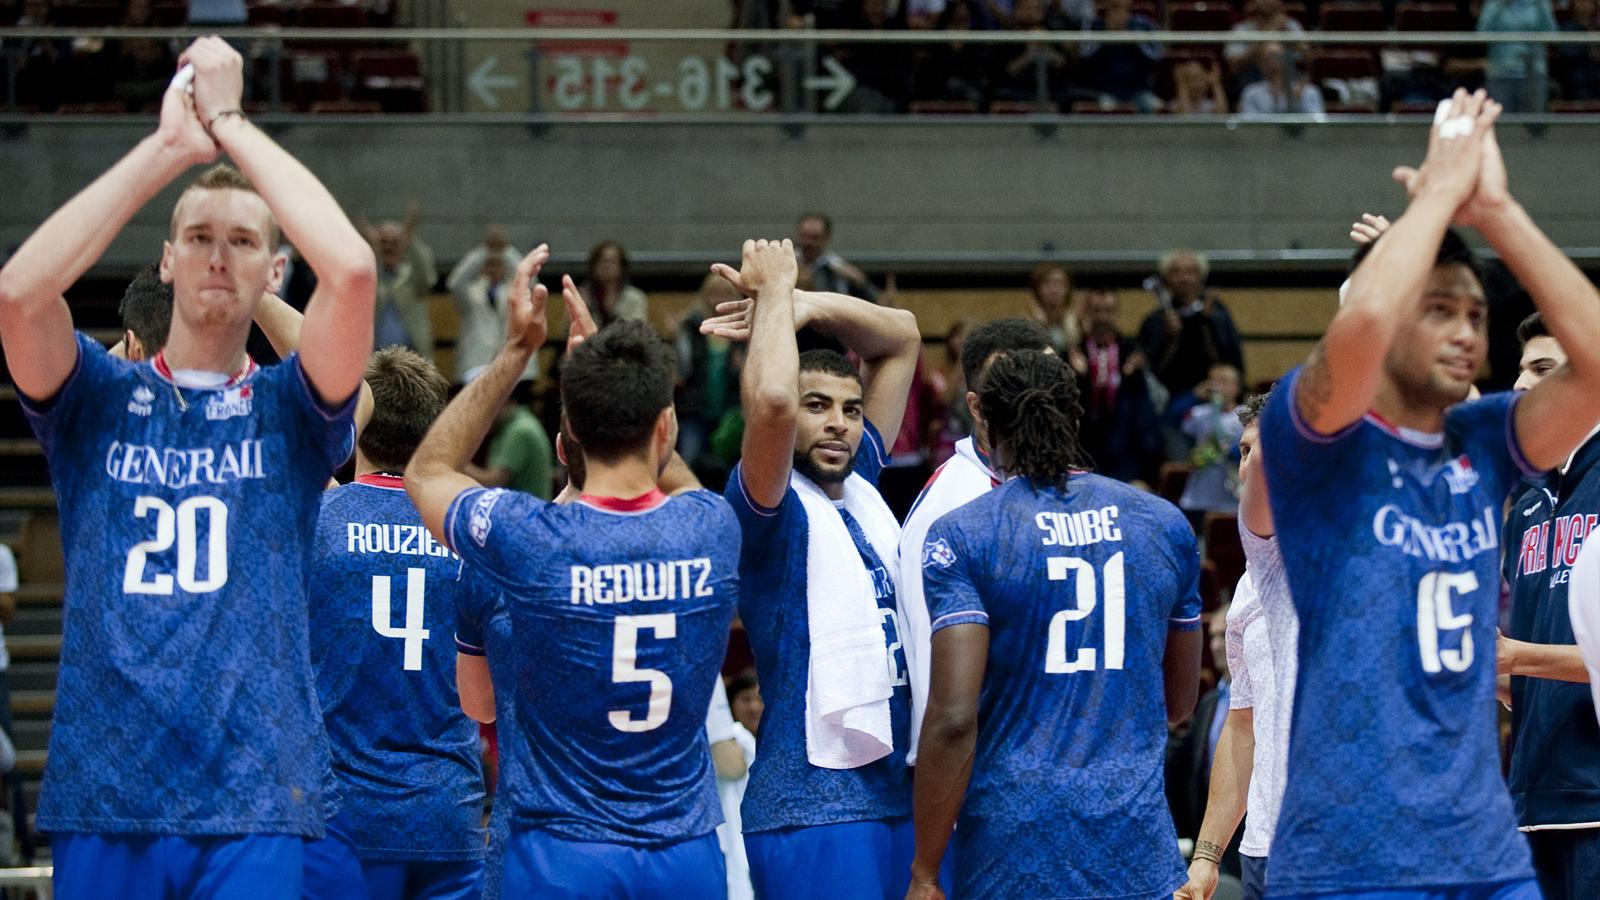 Match Volleyball France Iran en direct streaming live